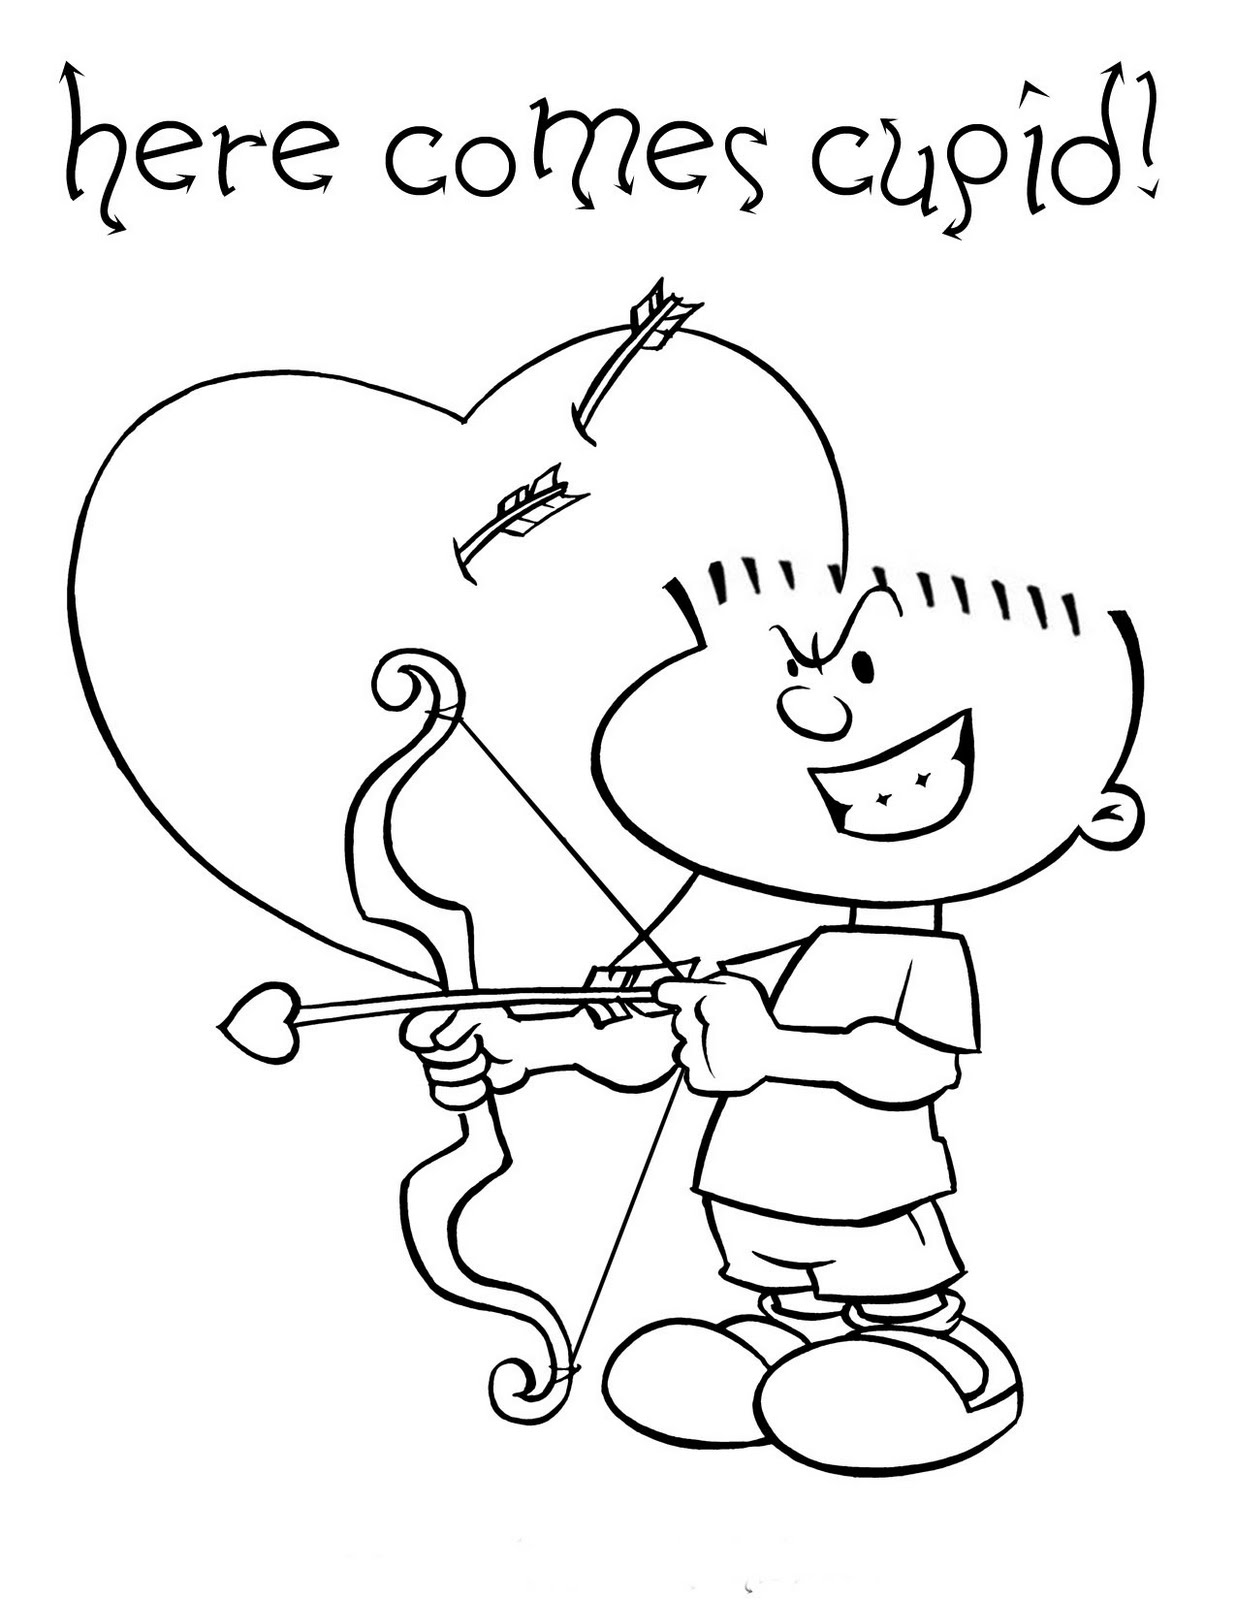 cupid coloring book pages - photo#27